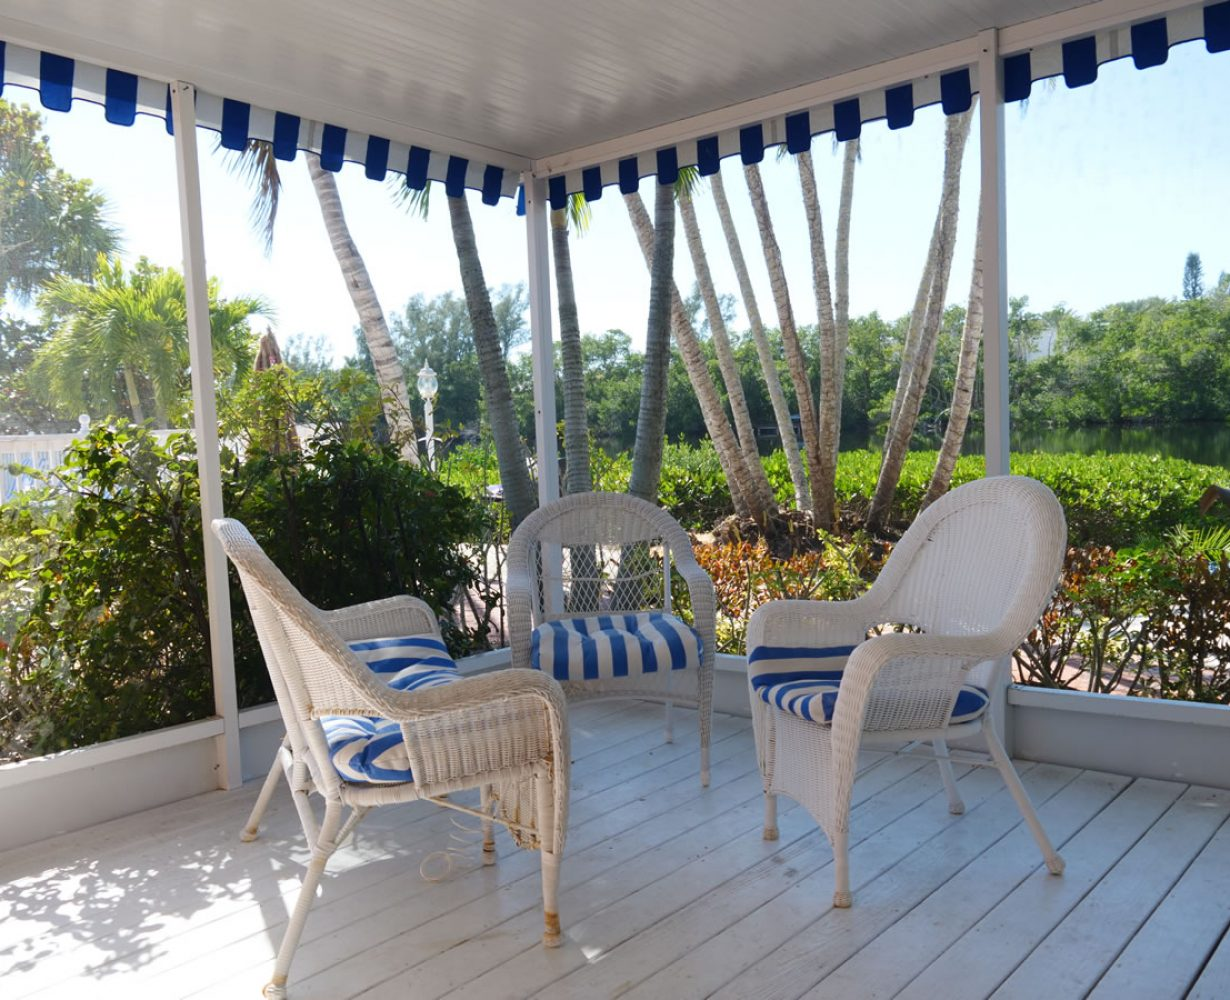 Welcome to the Tortuga Bungalow at Siesta Key Bungalows